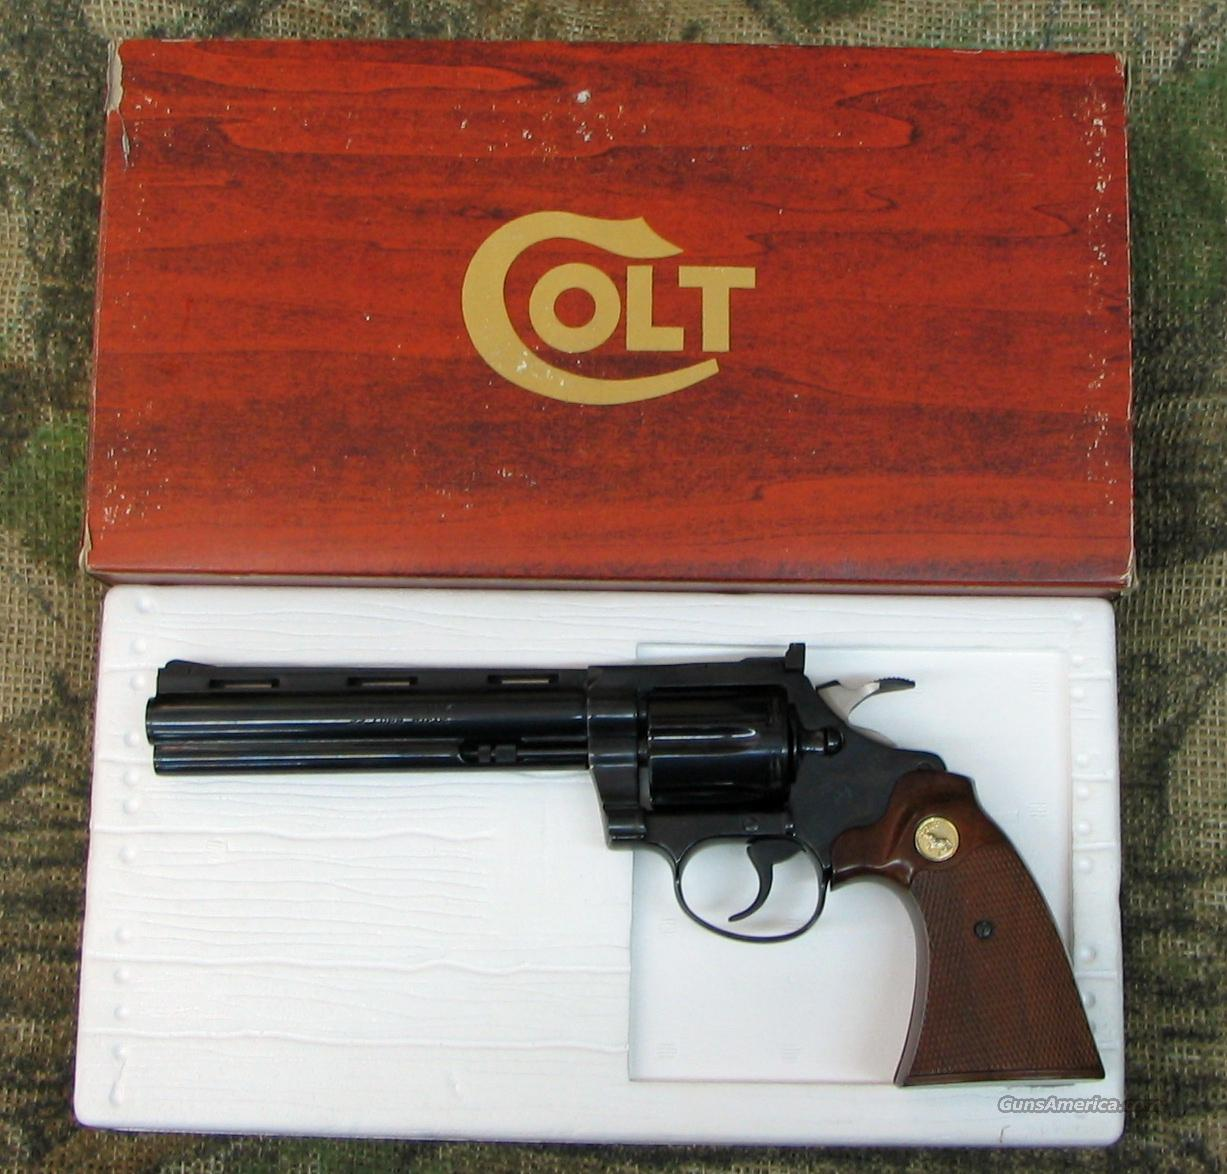 Colt Diamondback 22 LR, 6 inch bbl, Blued(PRICE REDUCED)  Guns > Pistols > Colt Double Action Revolvers- Modern